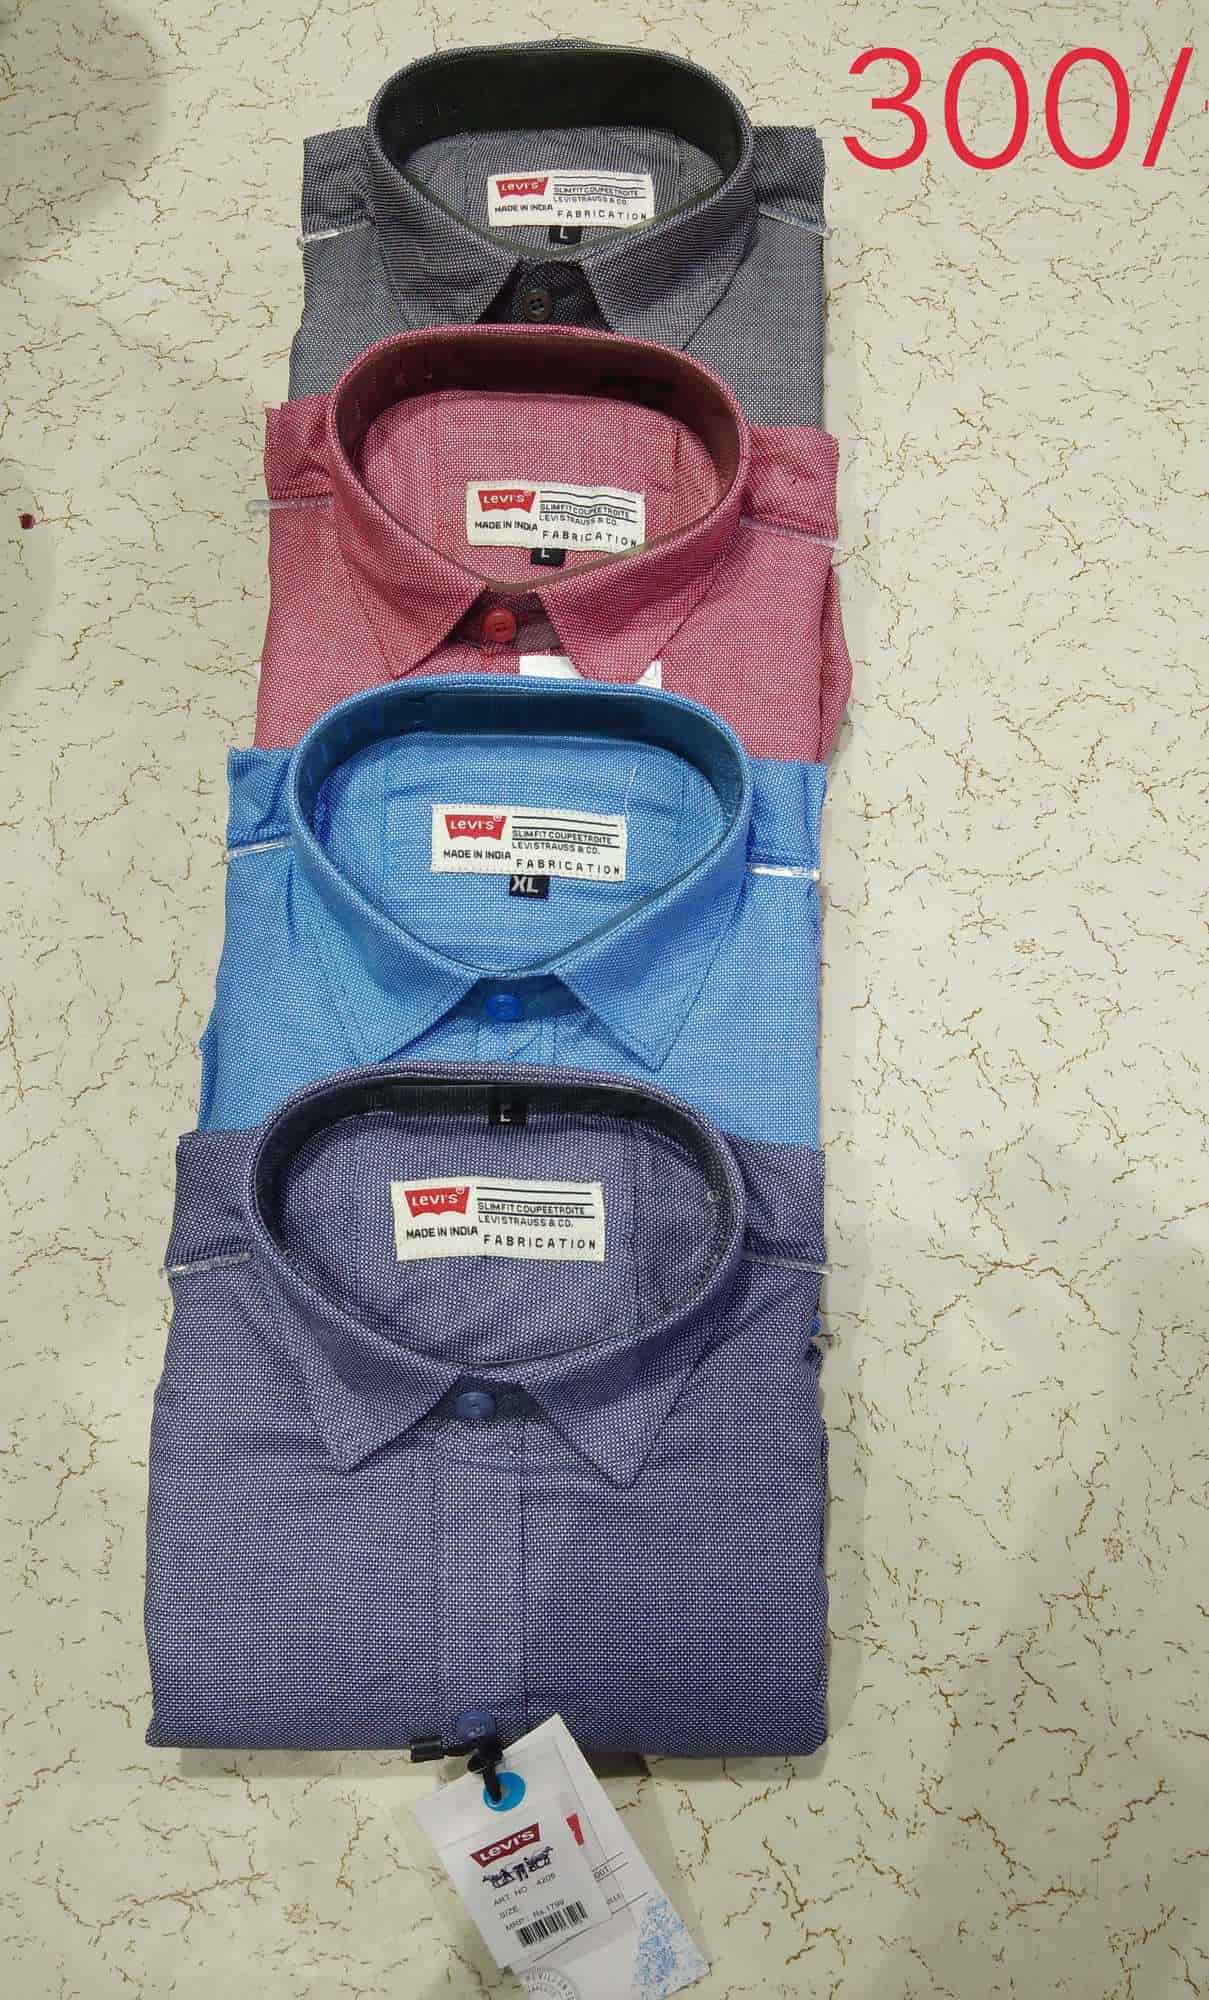 Branded Jeans And Shirts Wholesale In Delhi - raveitsafe